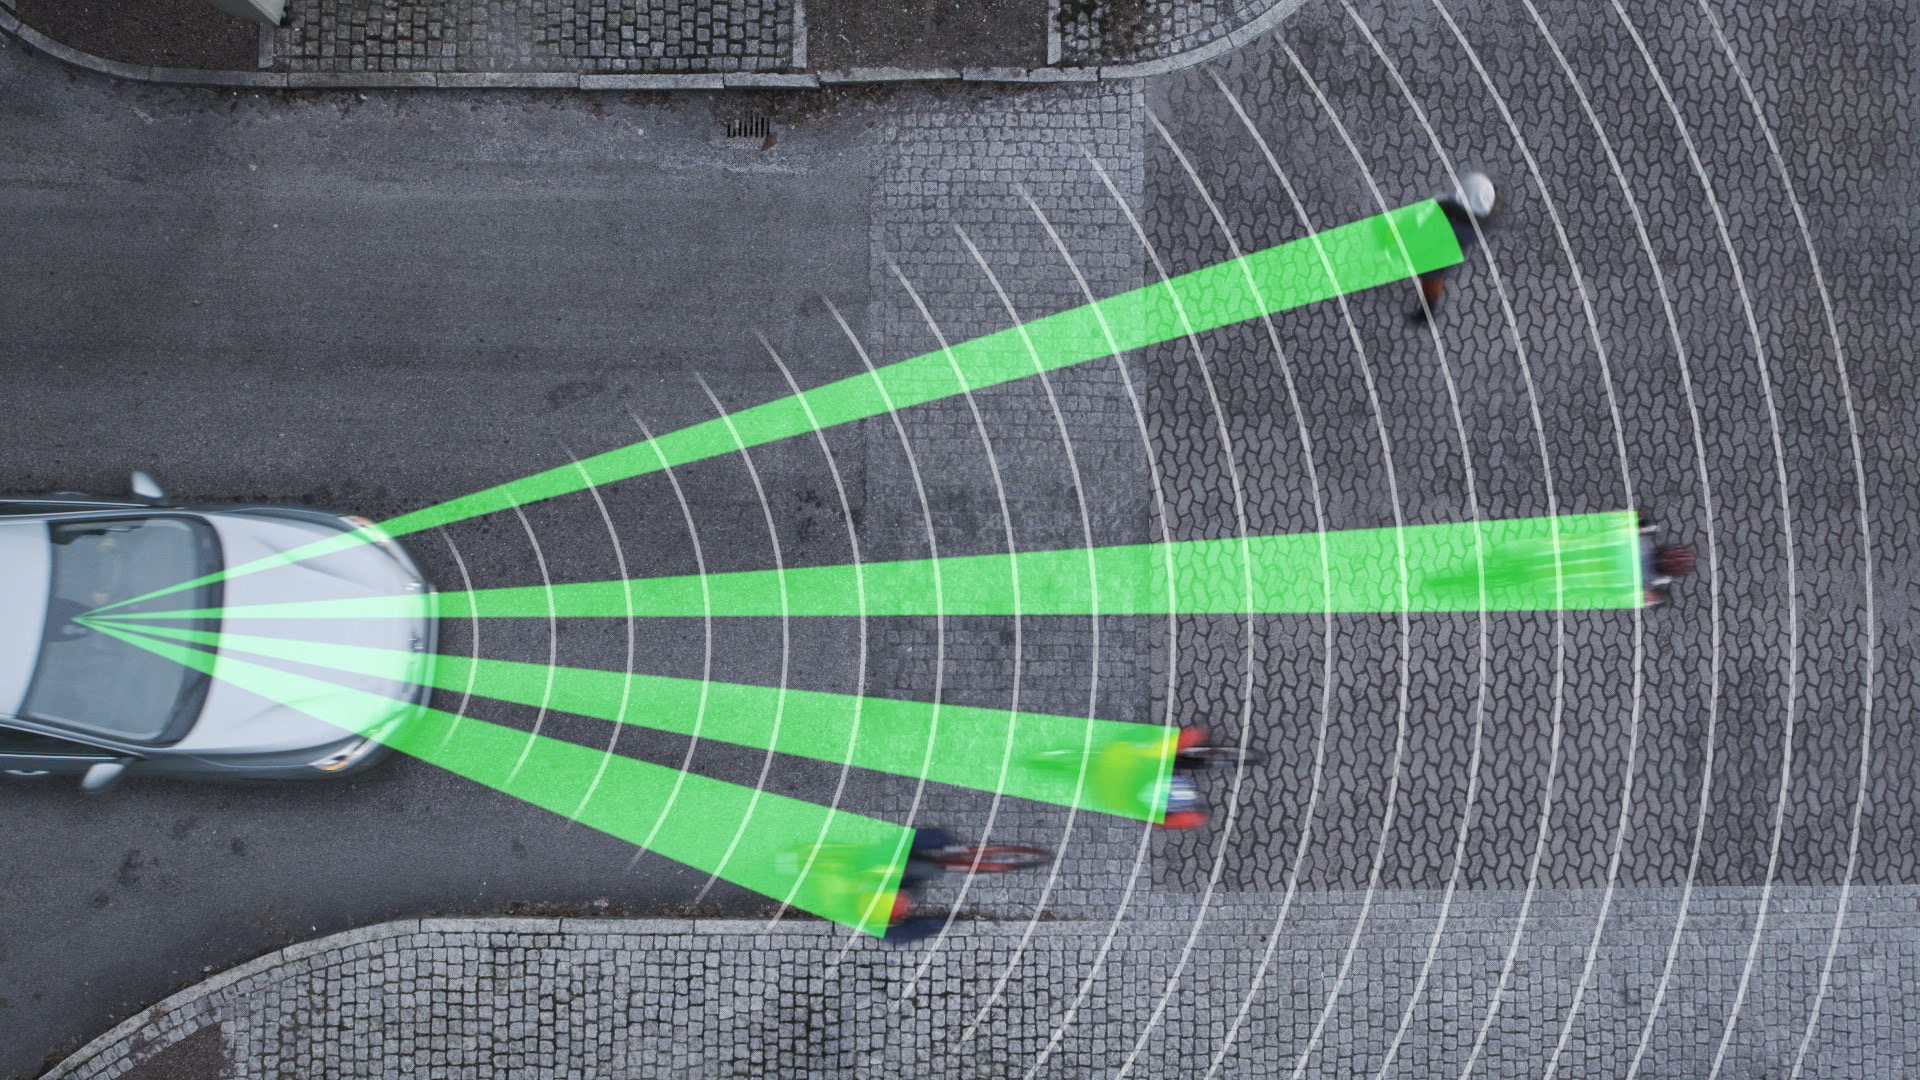 Pedestrian And Cyclist Detection With Full Auto Brake -   2013,  2014,  Images,  Other,  S80,  Safety,  Technology,  V40,  V60,  V70,  XC60,  XC70, 2013, 2014, S60, Volvo